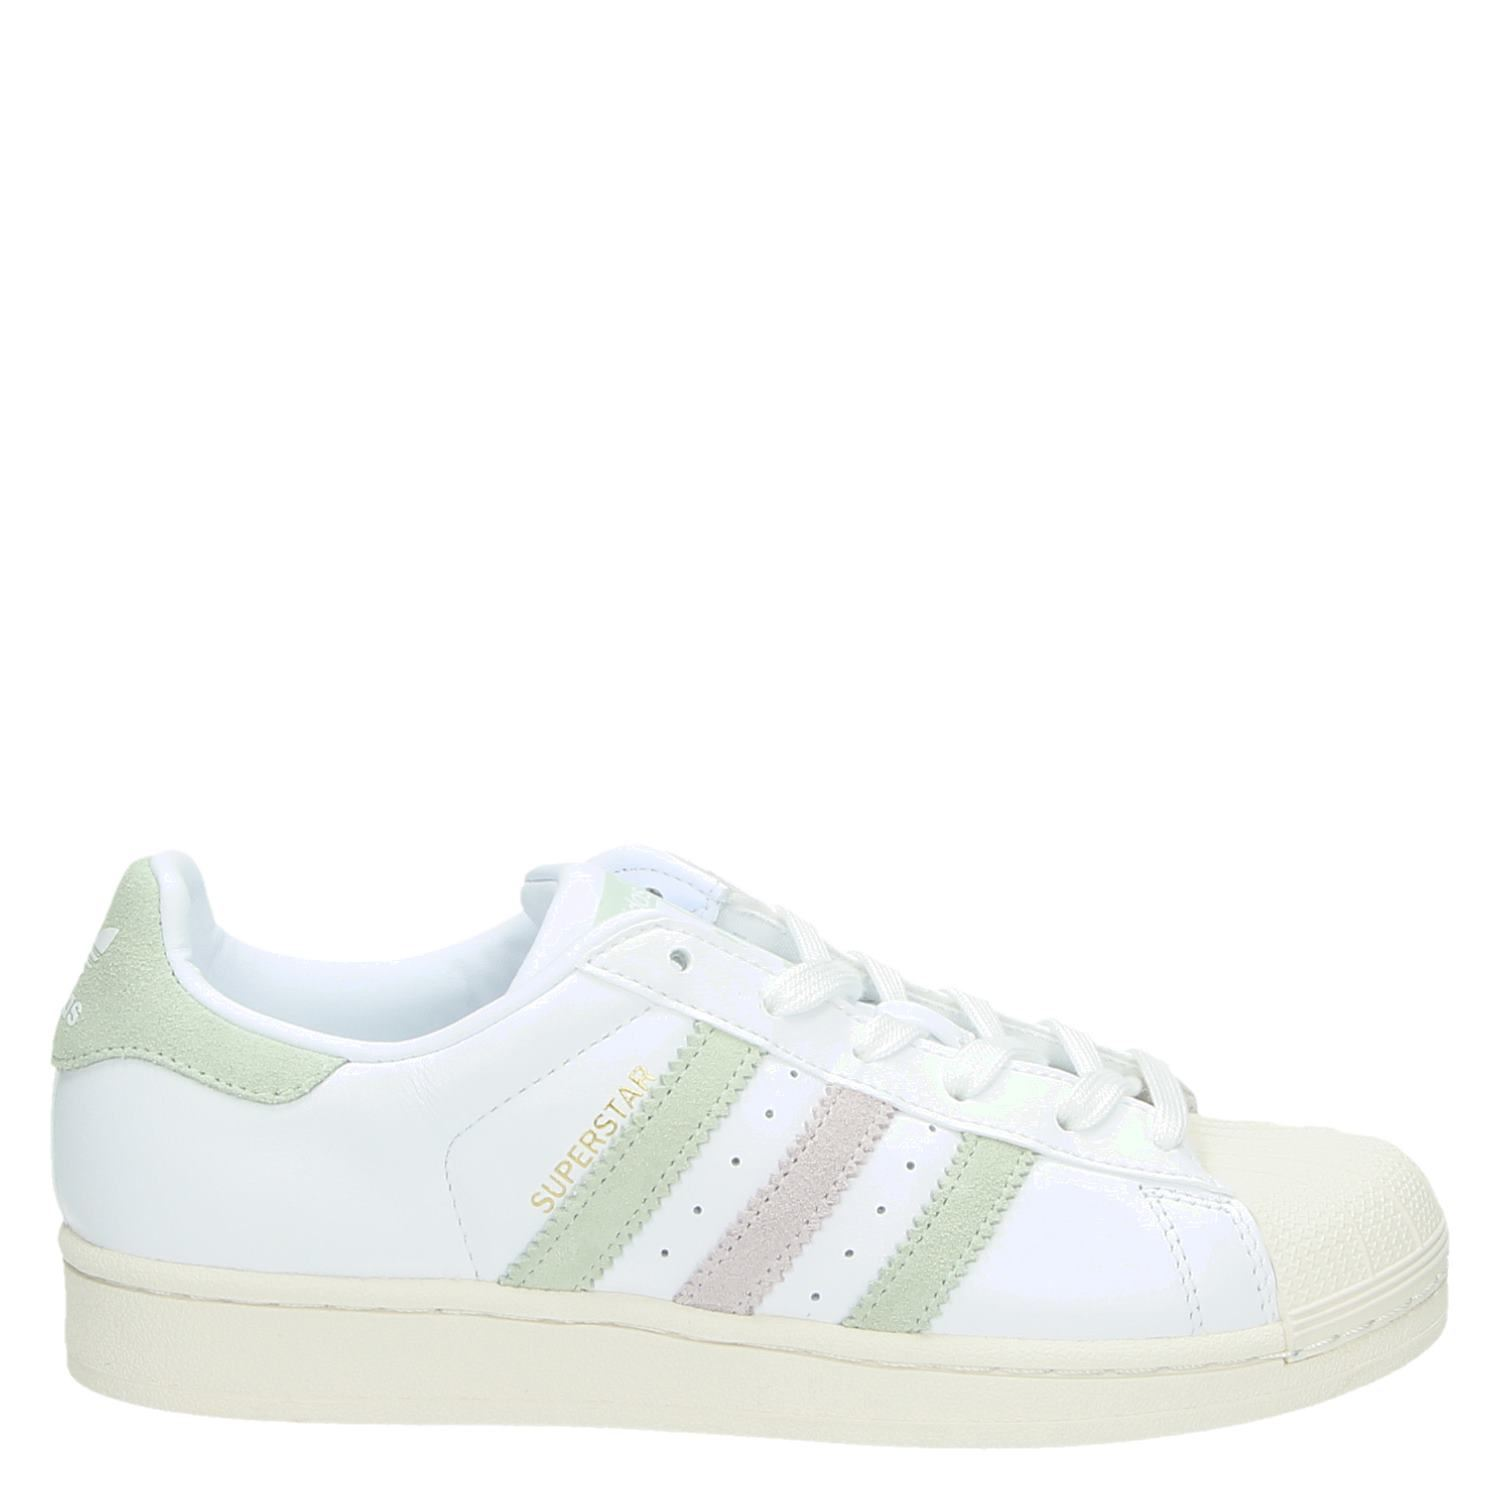 6de3dc7d120 Adidas Superstar dames sneakers wit